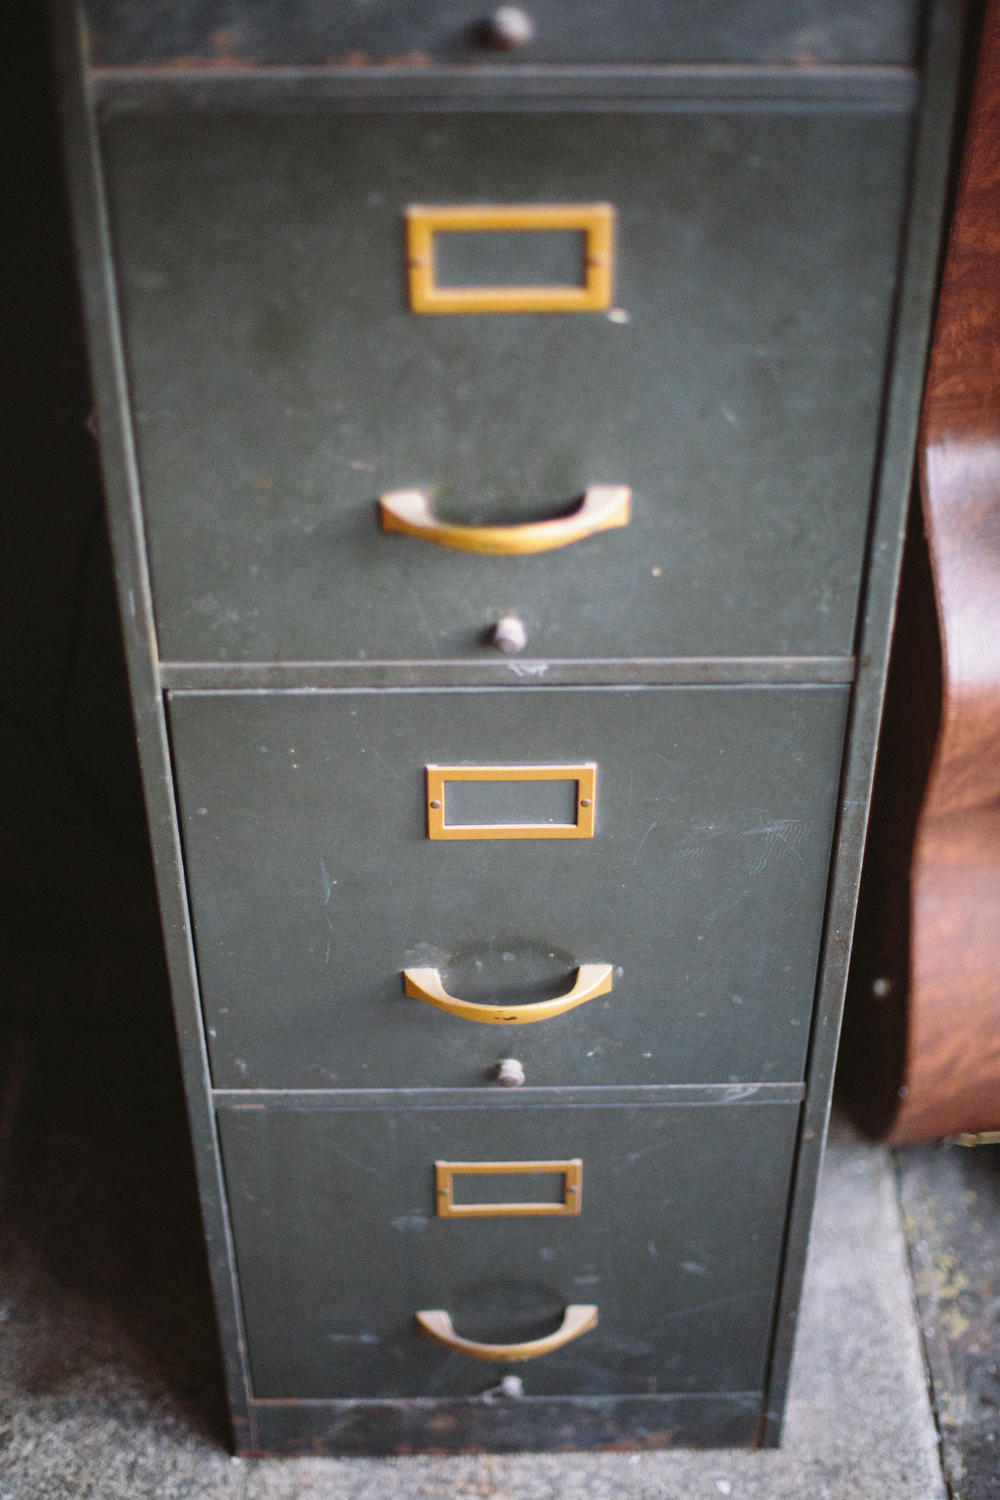 Behold the glorious filing cabinet: where it all starts and ends.